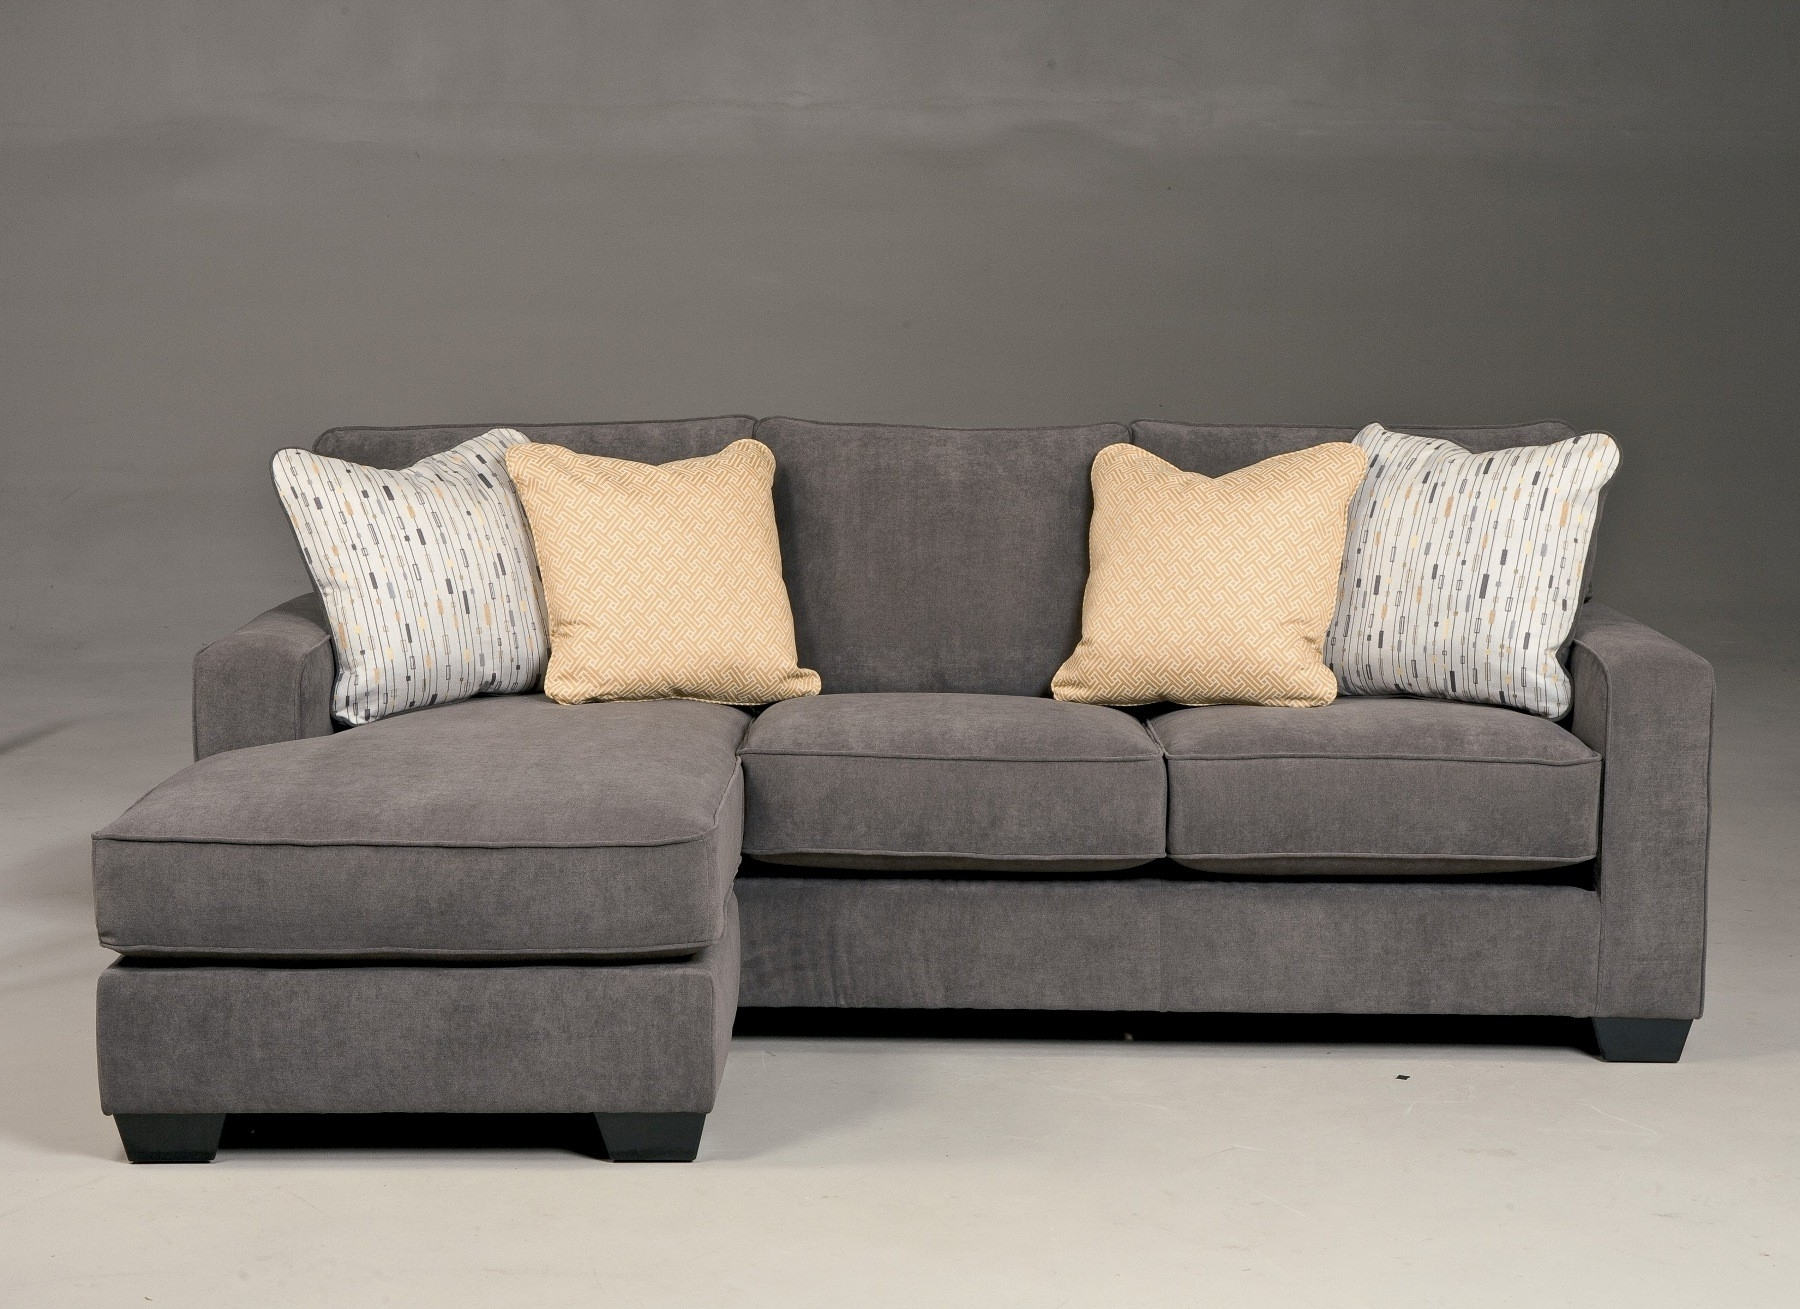 Chaise Settees In Best And Newest $719 – Ashley – Hodan Marble Sofa With Chaise Good Fabric Good (View 5 of 15)